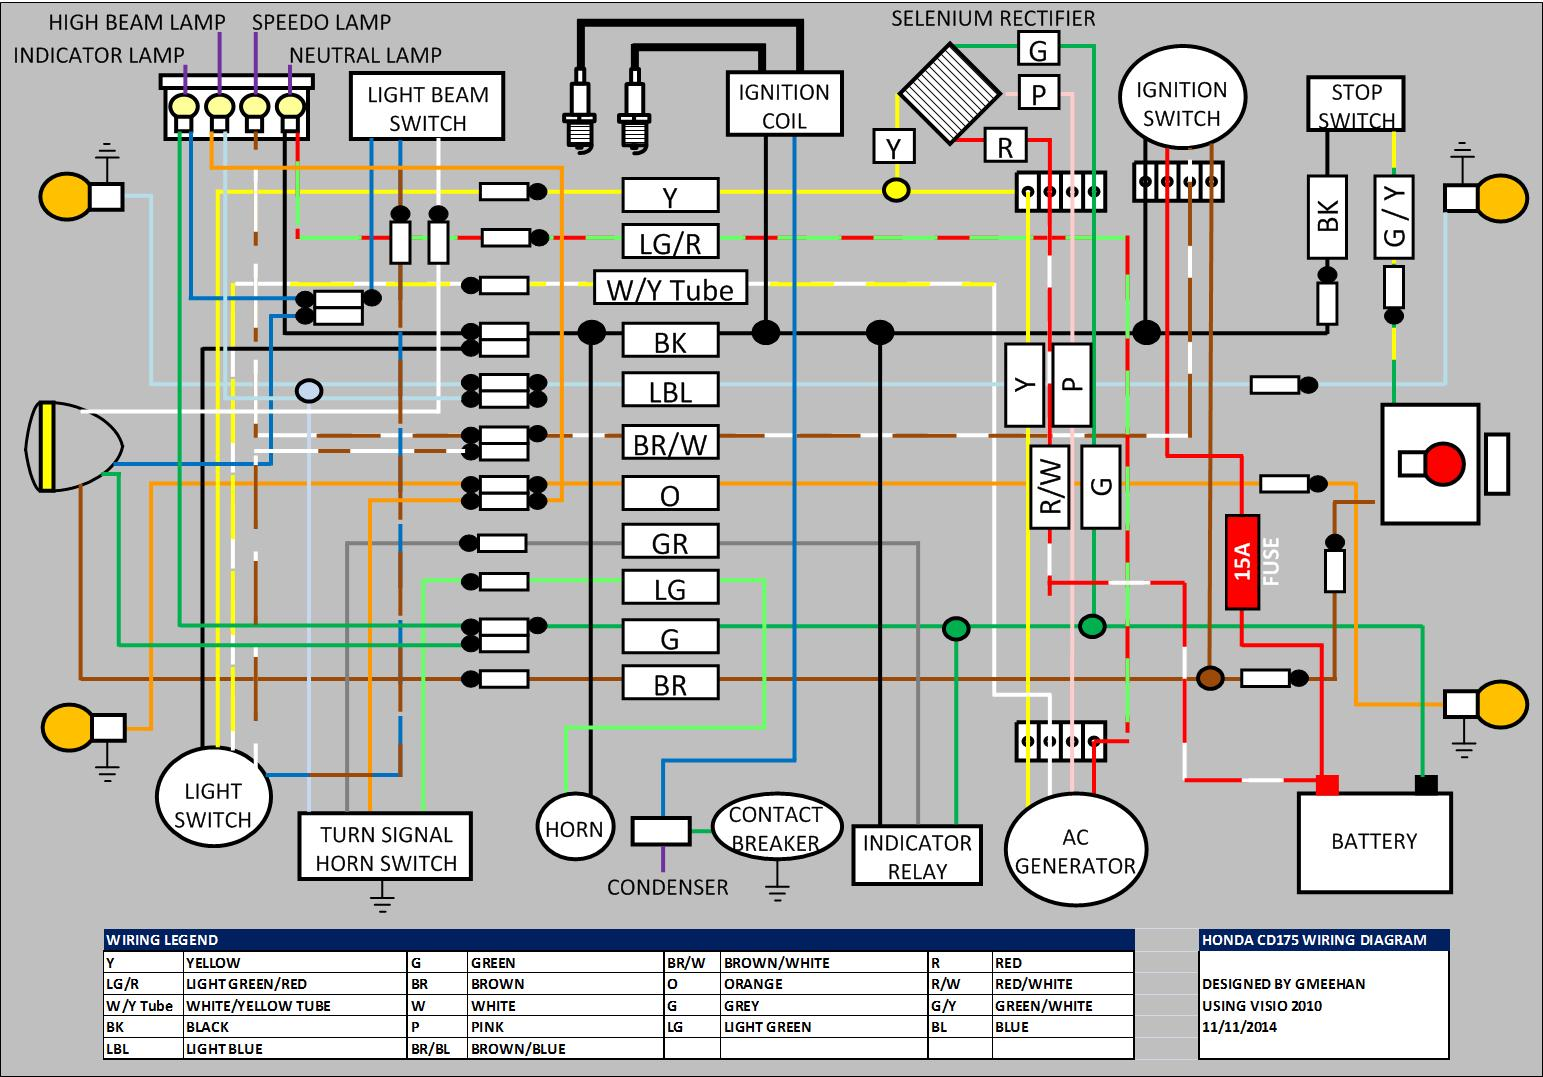 DIAGRAM] Honda Cd 175 Wiring Diagram FULL Version HD Quality Wiring Diagram  - DIAGRAMMYCASE.MINIERACAVEDELPREDIL.IT | Bcn Wire Diagram |  | Diagram Database